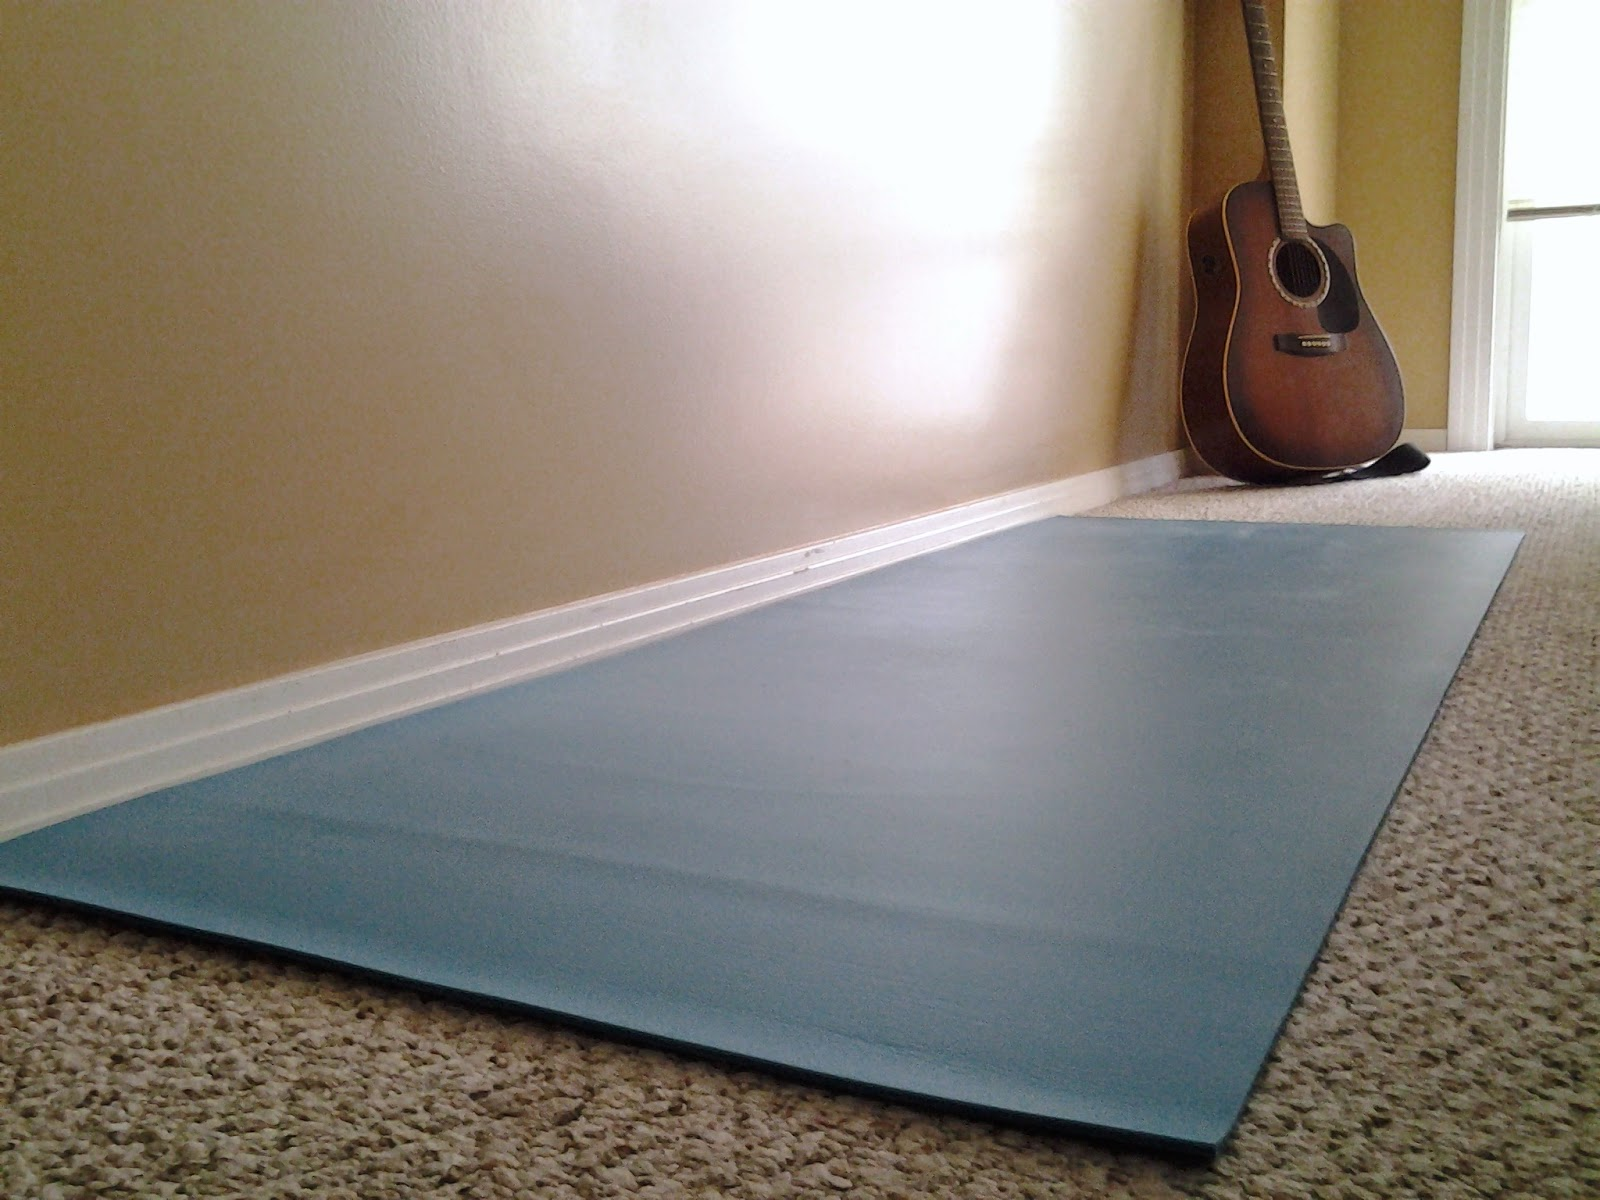 superstore yoga mat